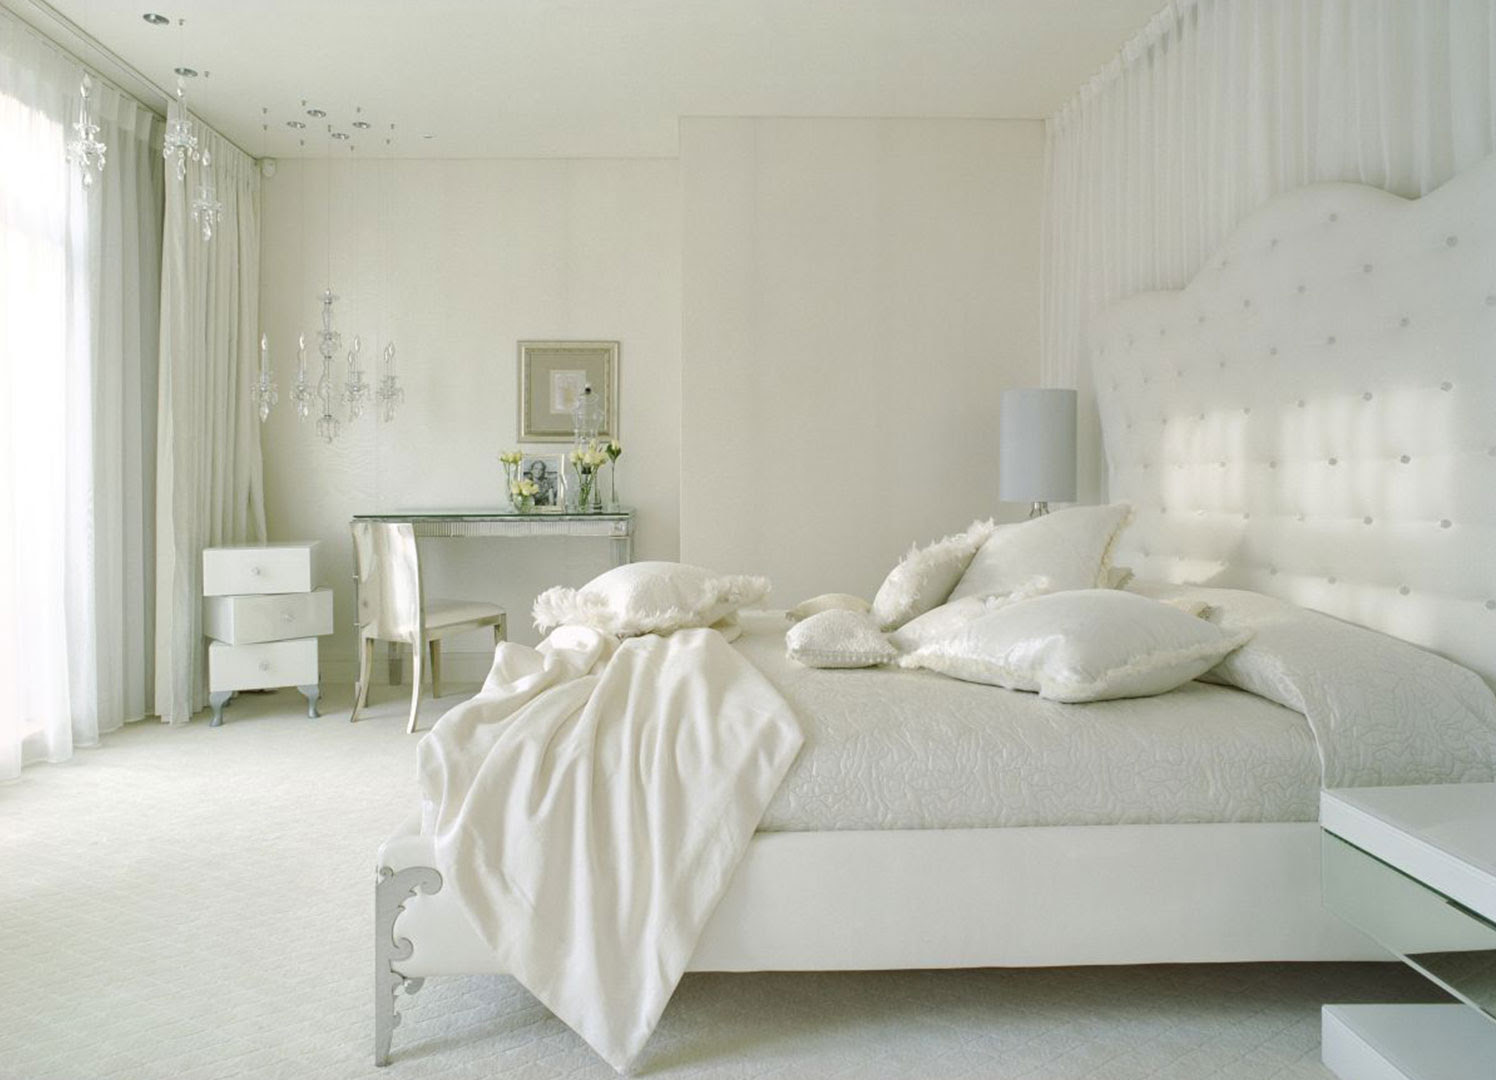 30 White Bedroom Ideas For Your Home - The WoW Style